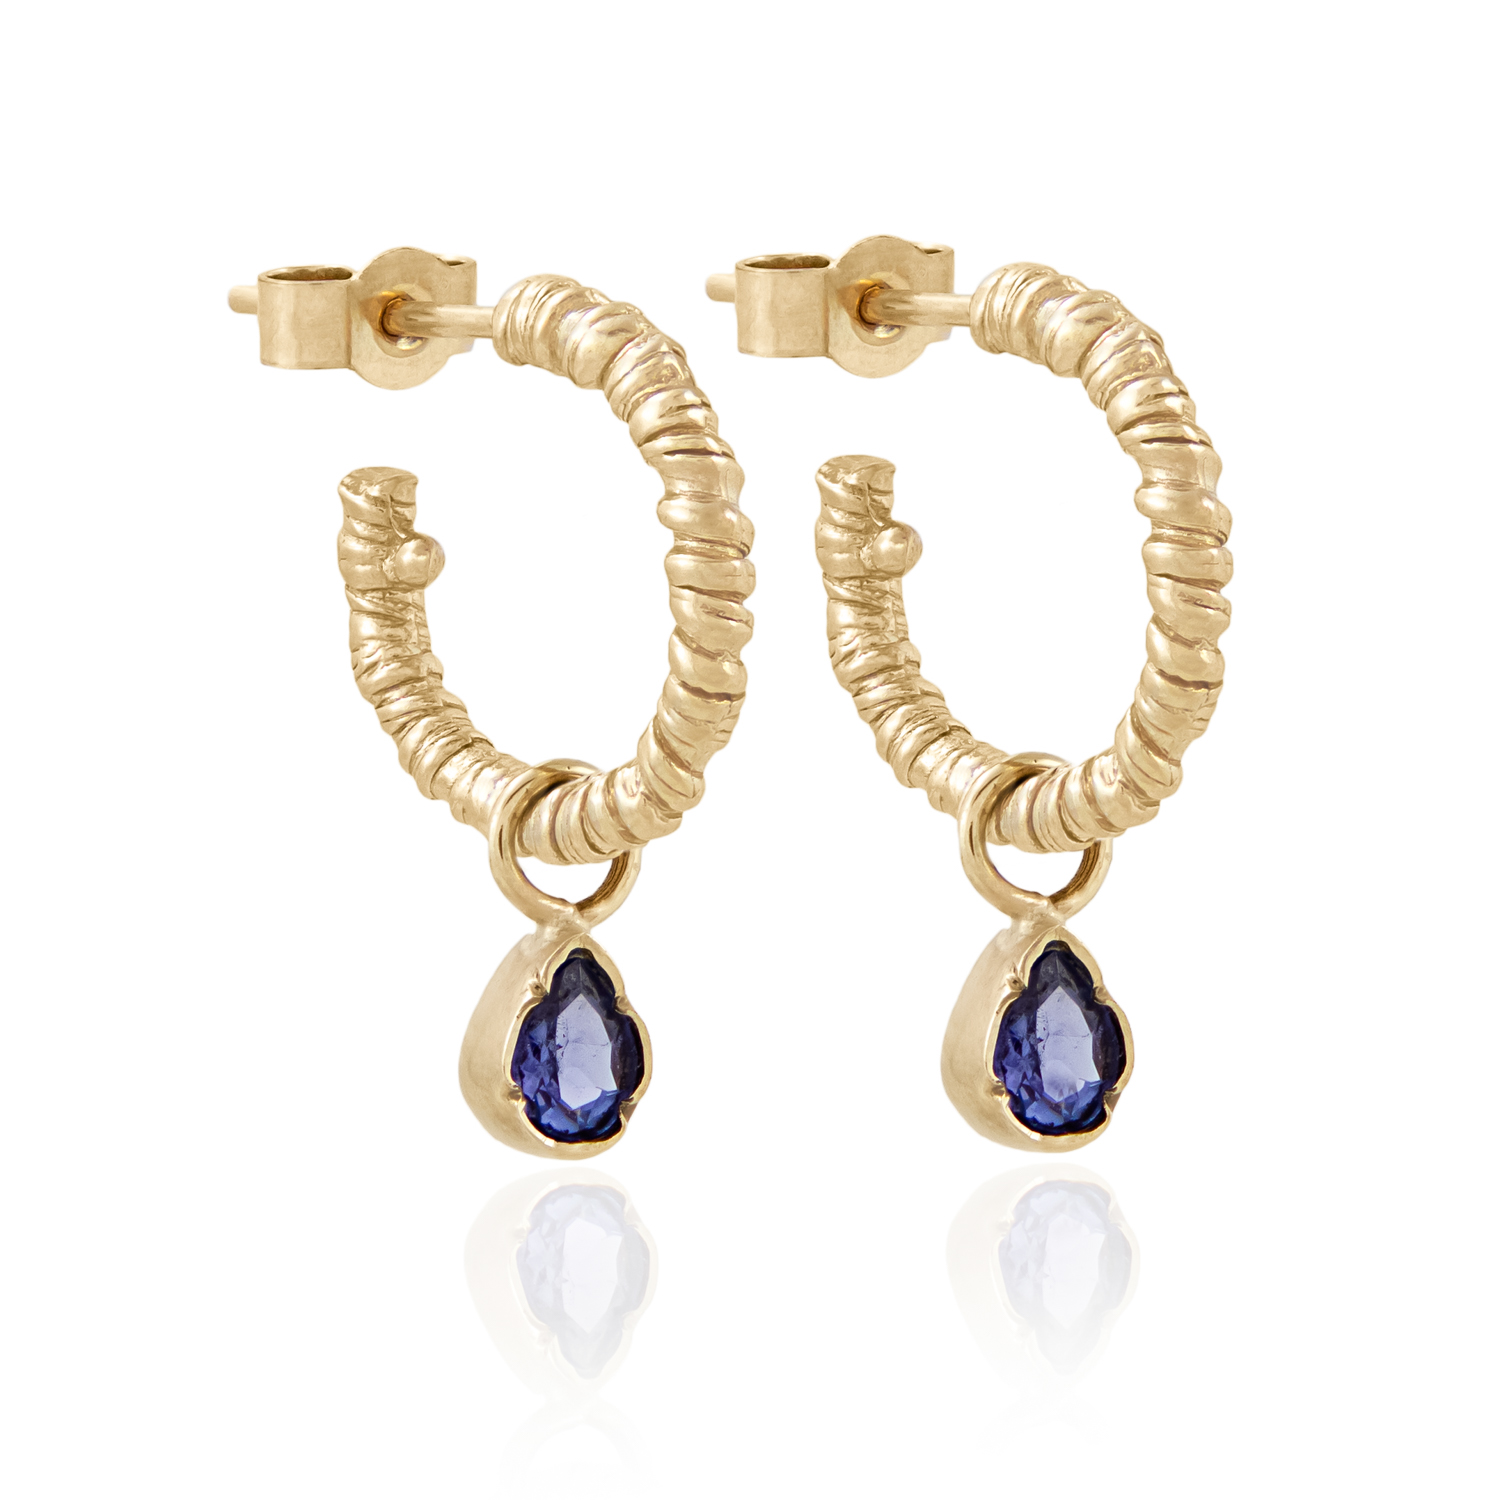 Natalie-Perry-Jewellery-Organic-Twisted-Charm-Hoops-with-tanzanite-charms-1500-sh